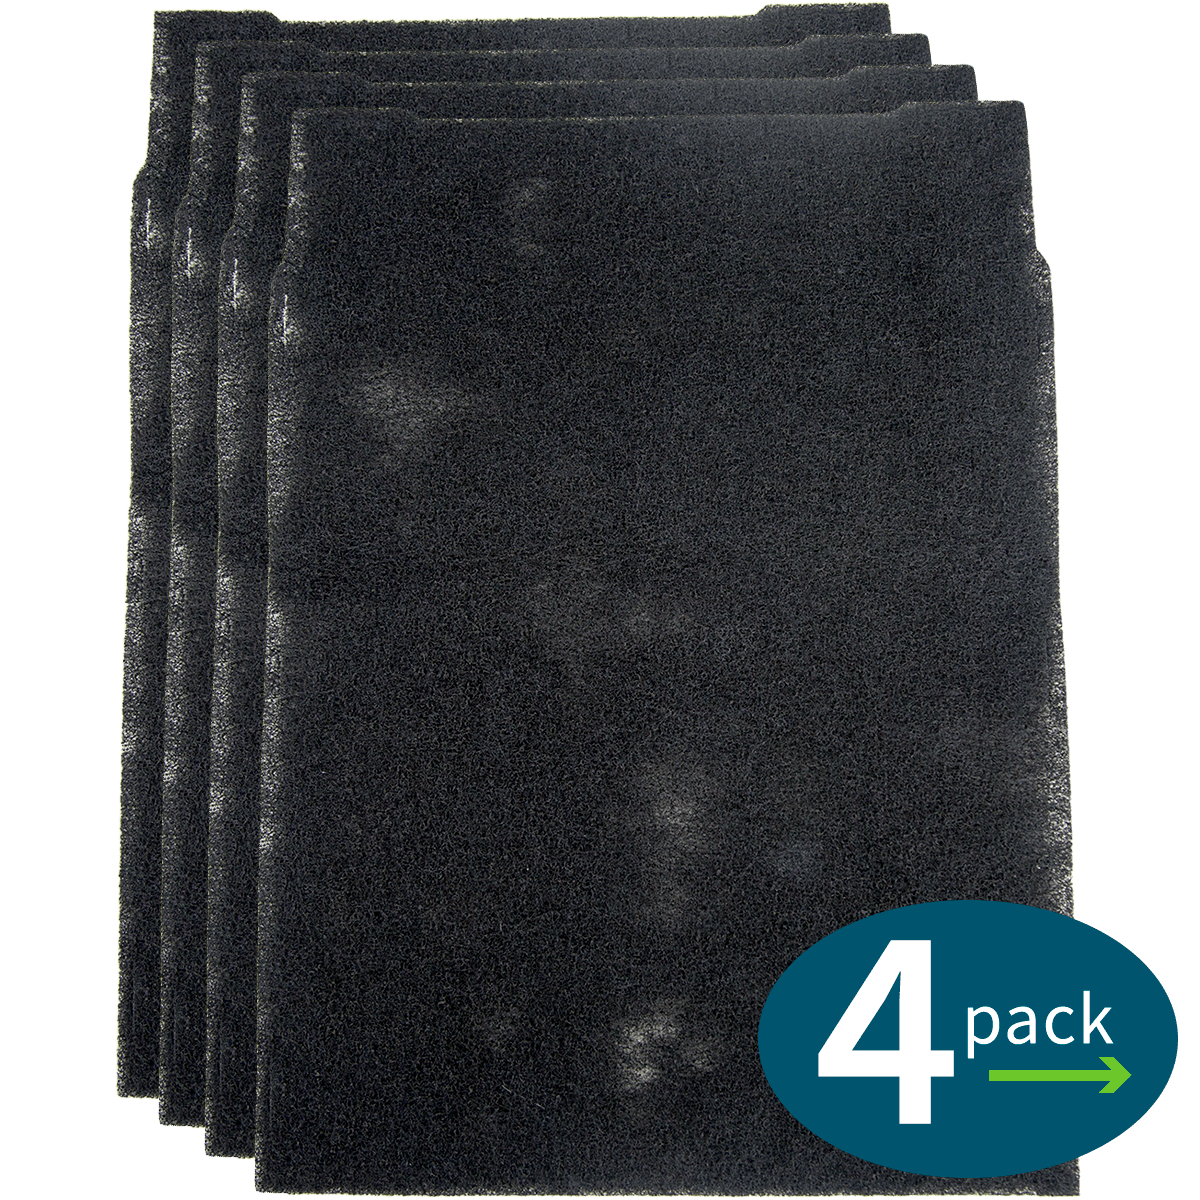 Master Brands HK Small Carbon Pre-Filter for Whirlpool Air Purifiers (4-Pack) wh6366